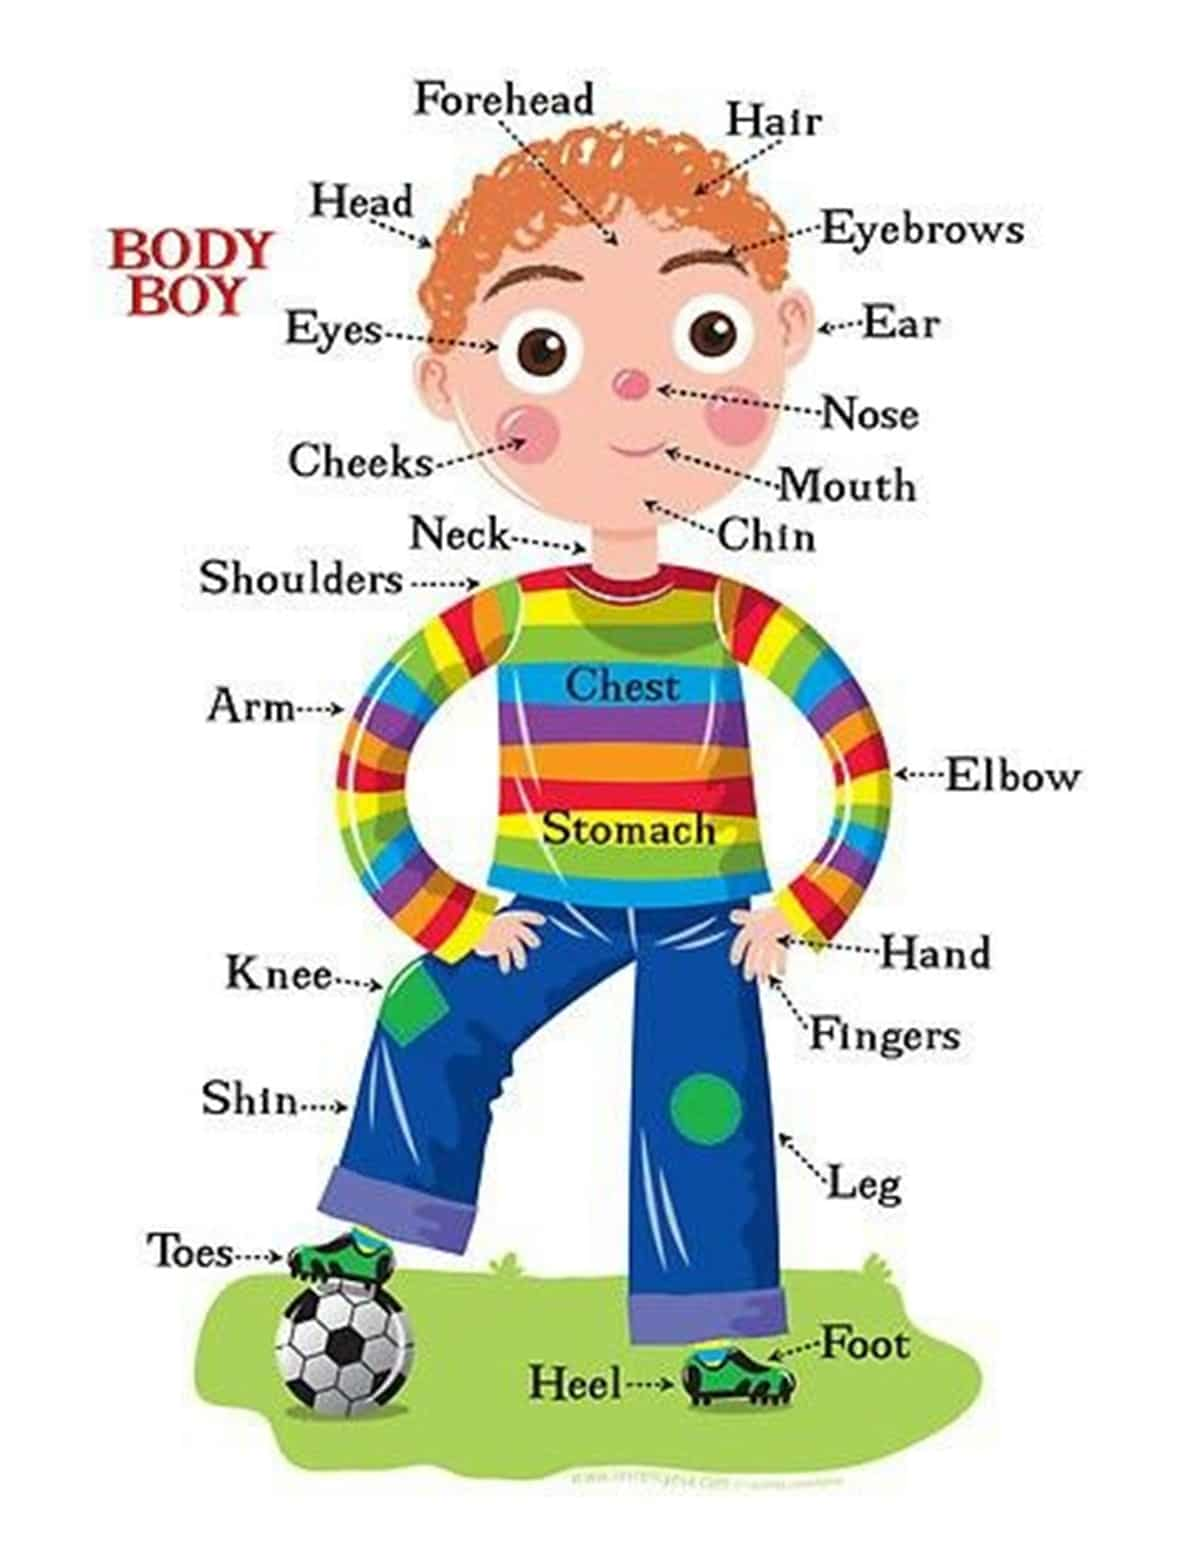 Human Body Parts Let S Explore The Human Body